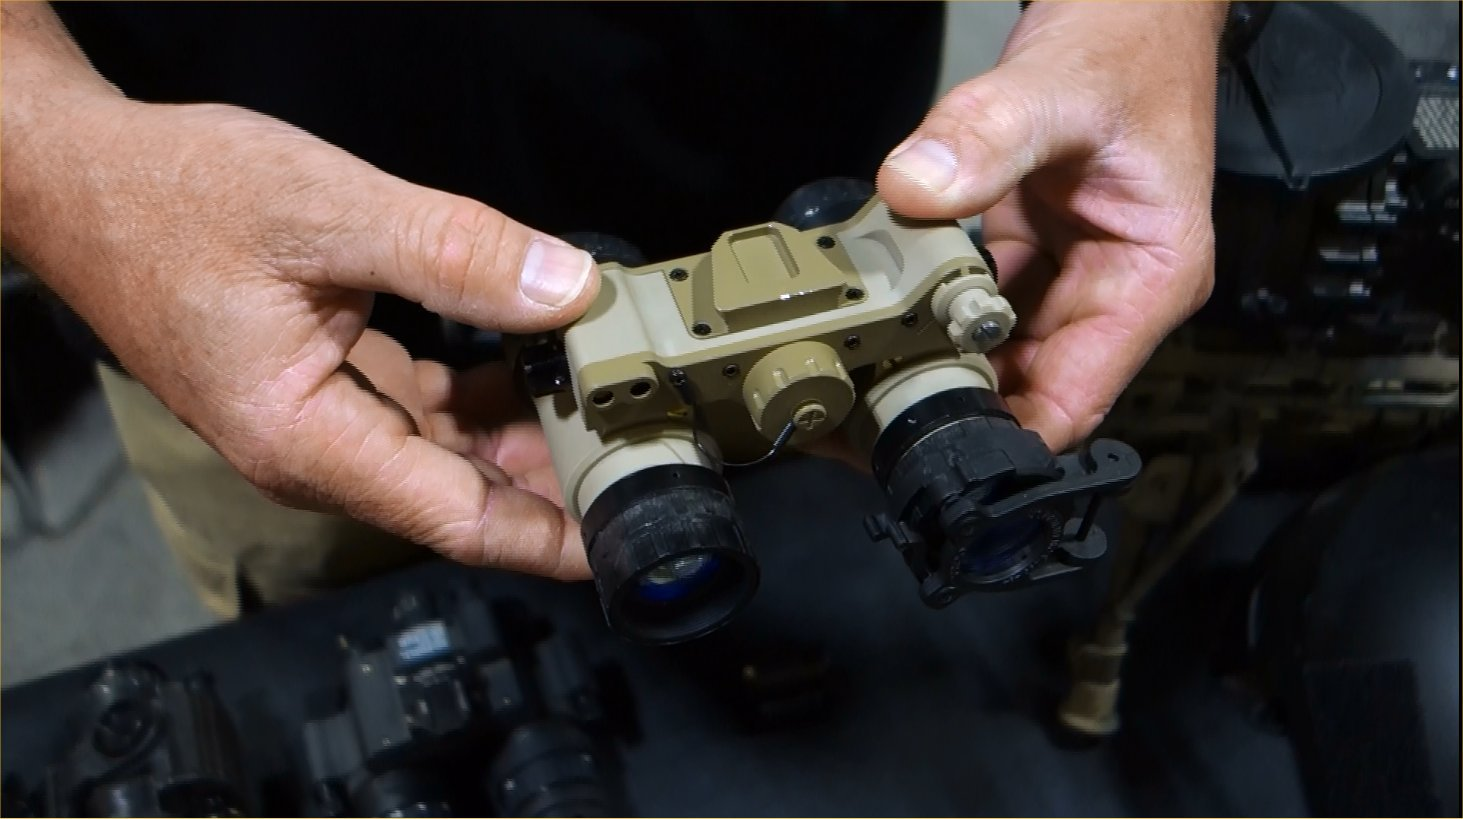 Adams Industries (AI)/Tactical Night Vision Company TNVC Sentinel Night Vision Goggle (NVG)/Imaging System: Up-Armored AN/AVS-6/9 (ANVIS 6/9) NVG for Military Special Operations Forces (SOF) (Video!)